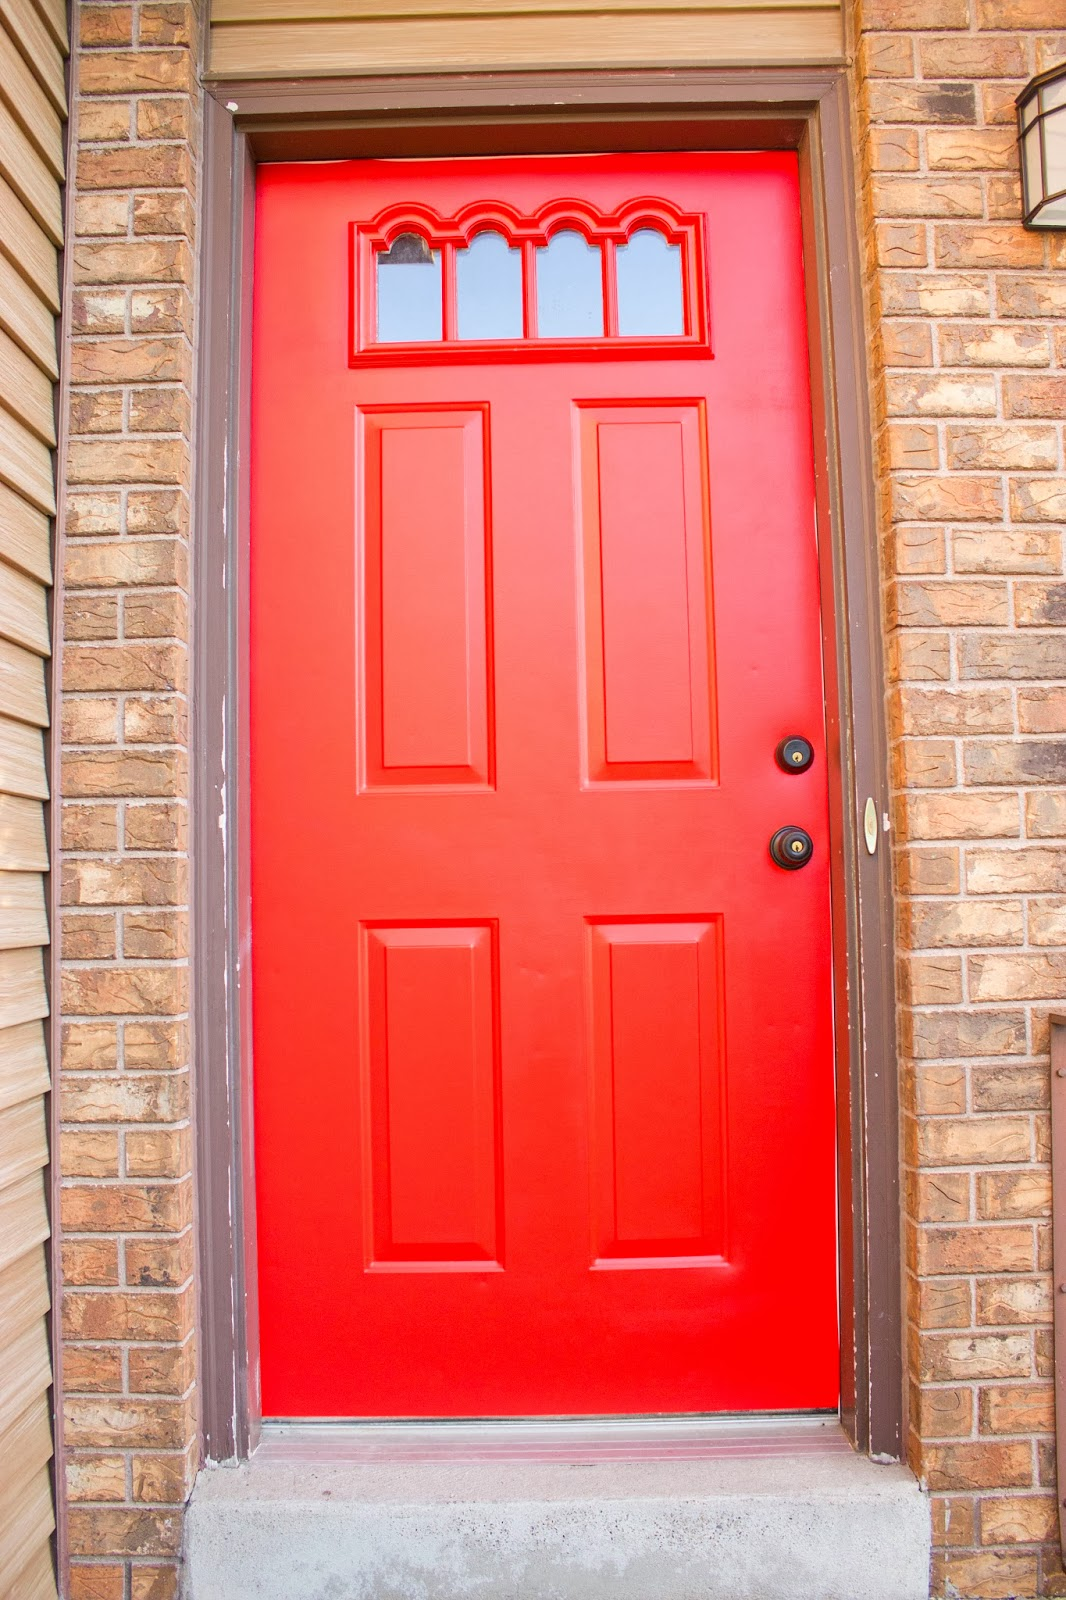 It S The One With Bright Red Door Yes We Still Need To Paint Trim Somewhere On Our Long List Of Updates Make